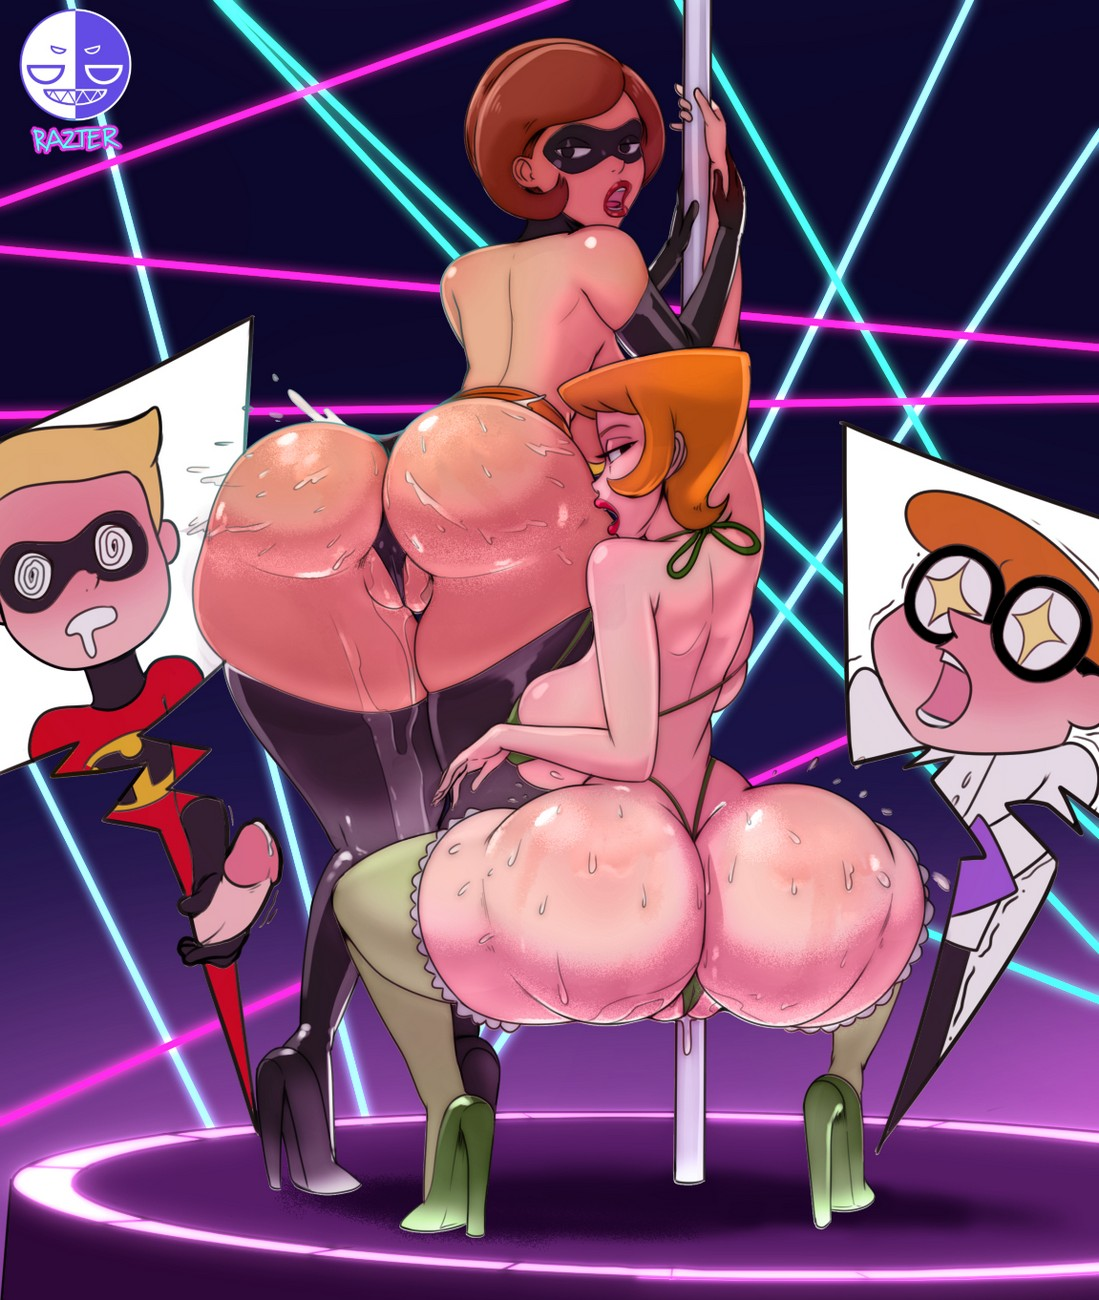 100 Pictures of Elastigirl Porno